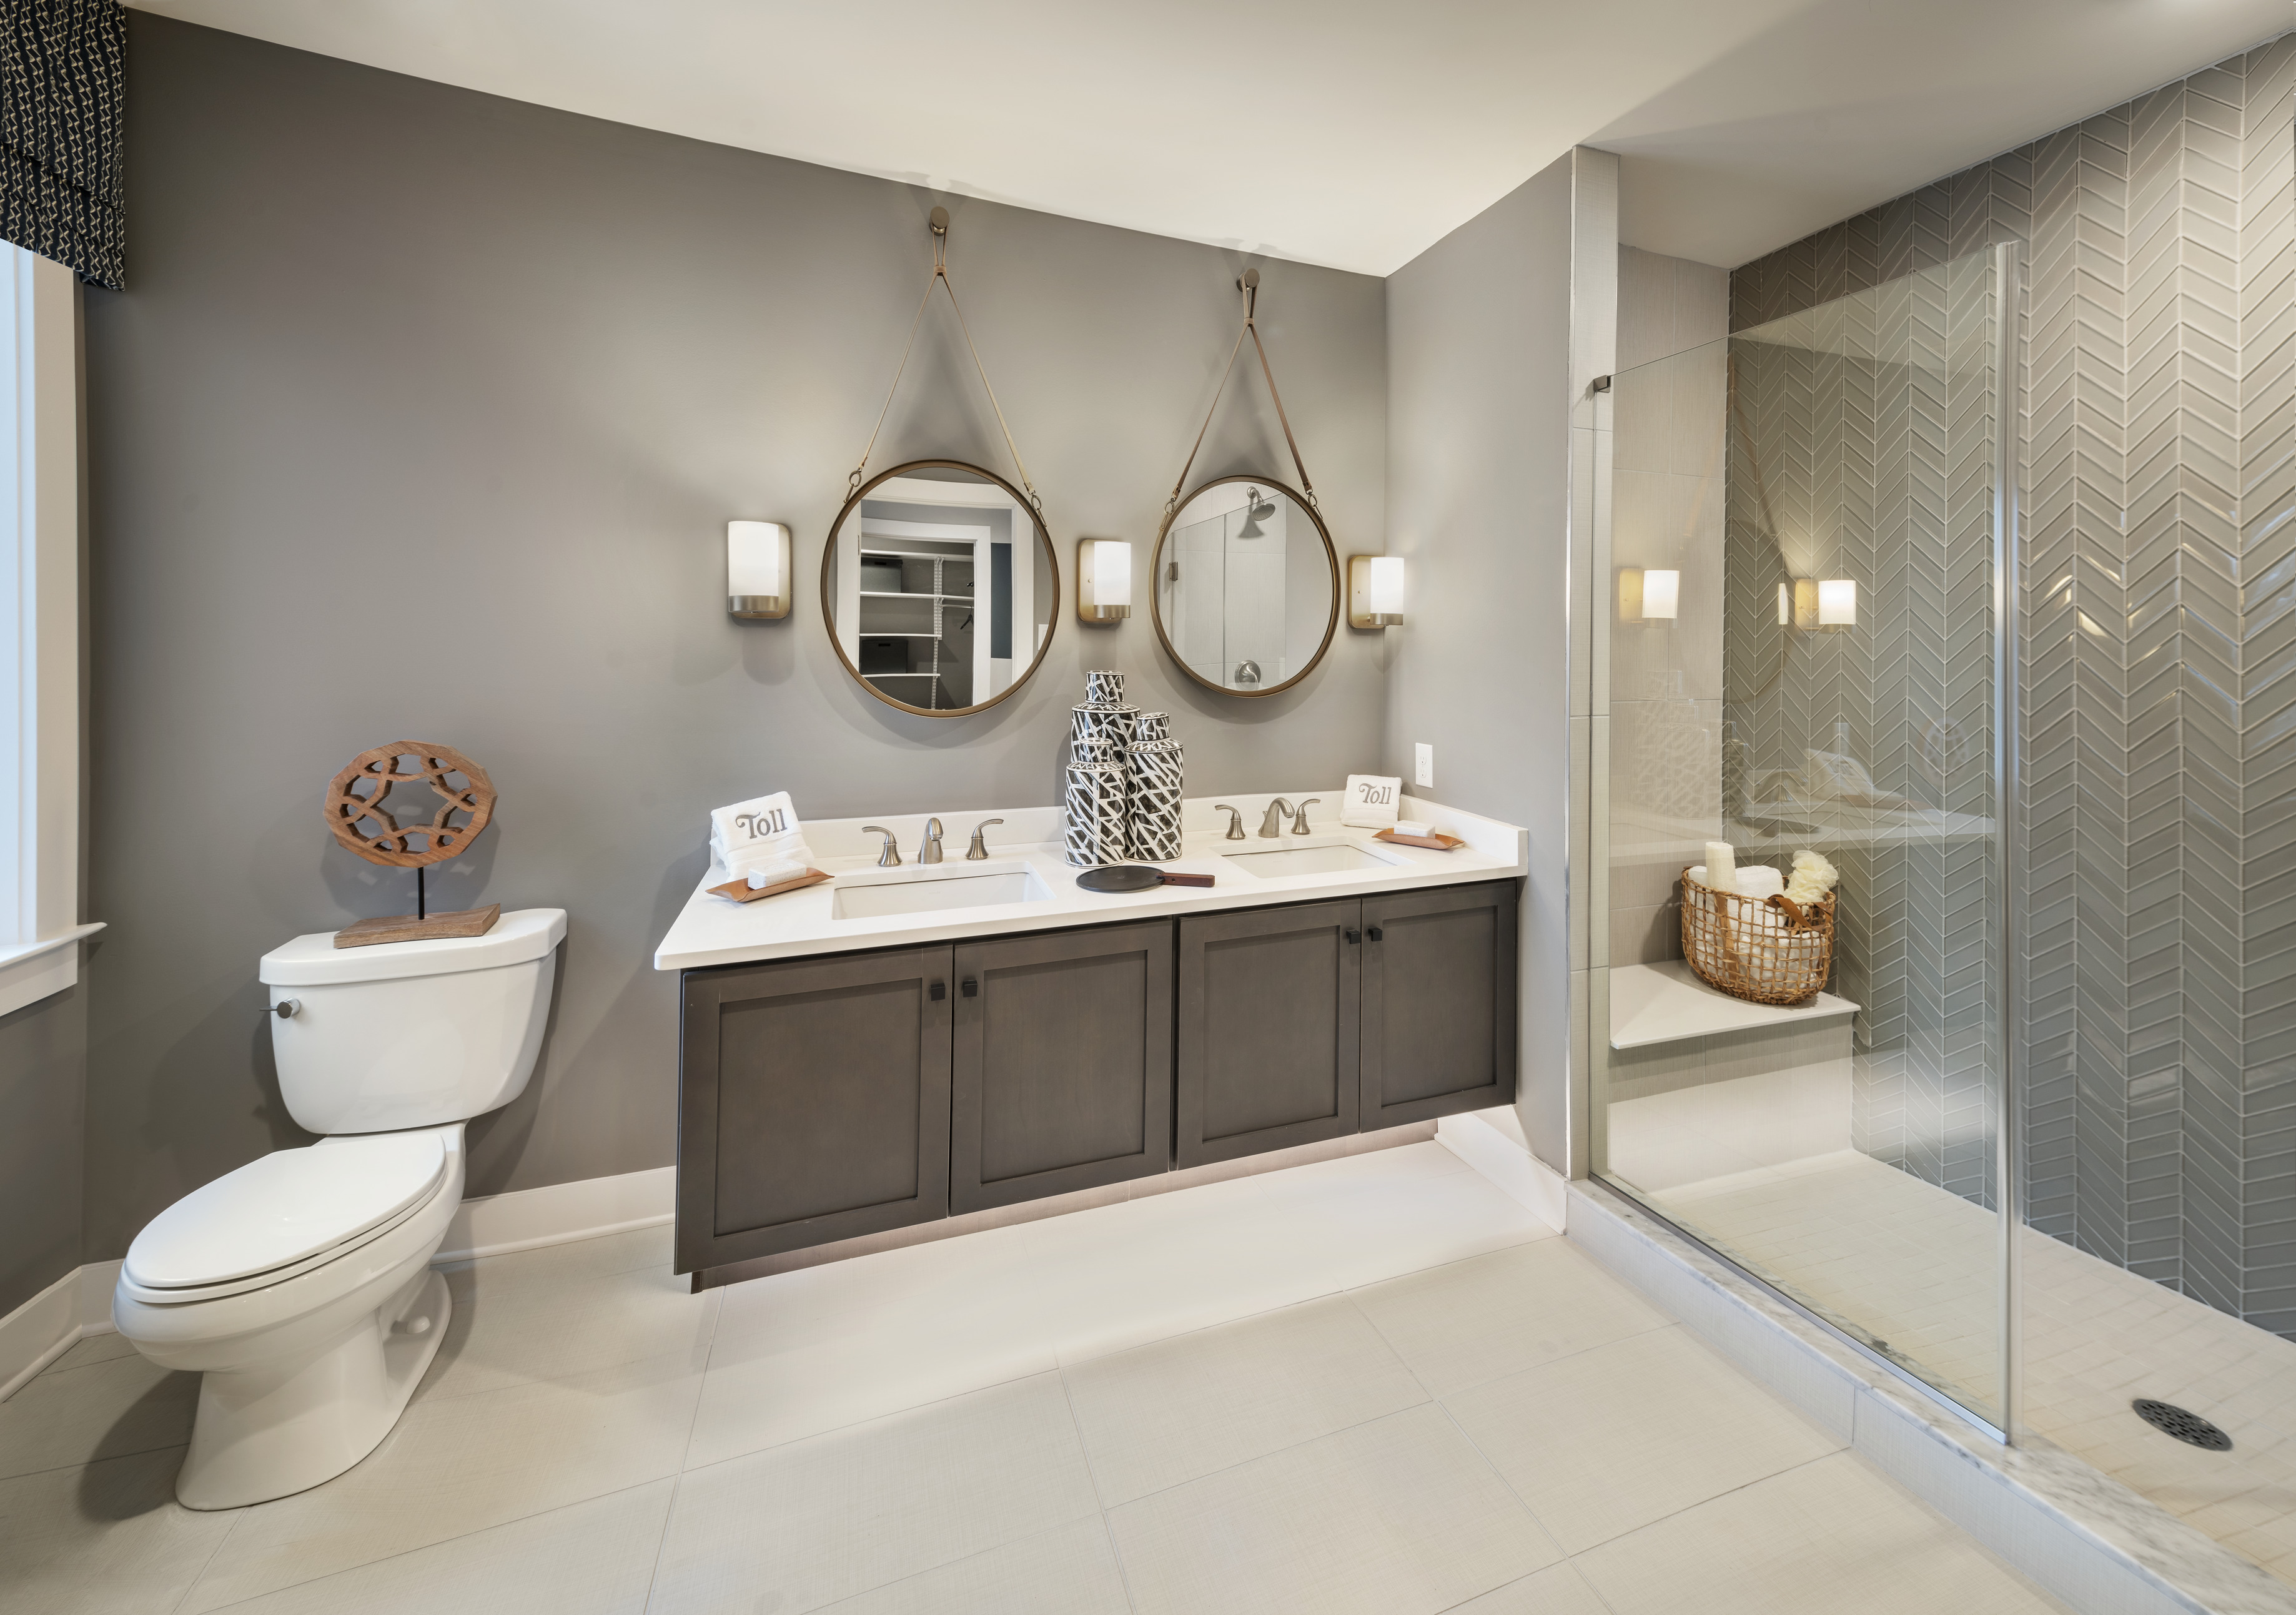 Bathroom with Repose Gray painted walls, dual vanity, toilet, and walk-in shower.